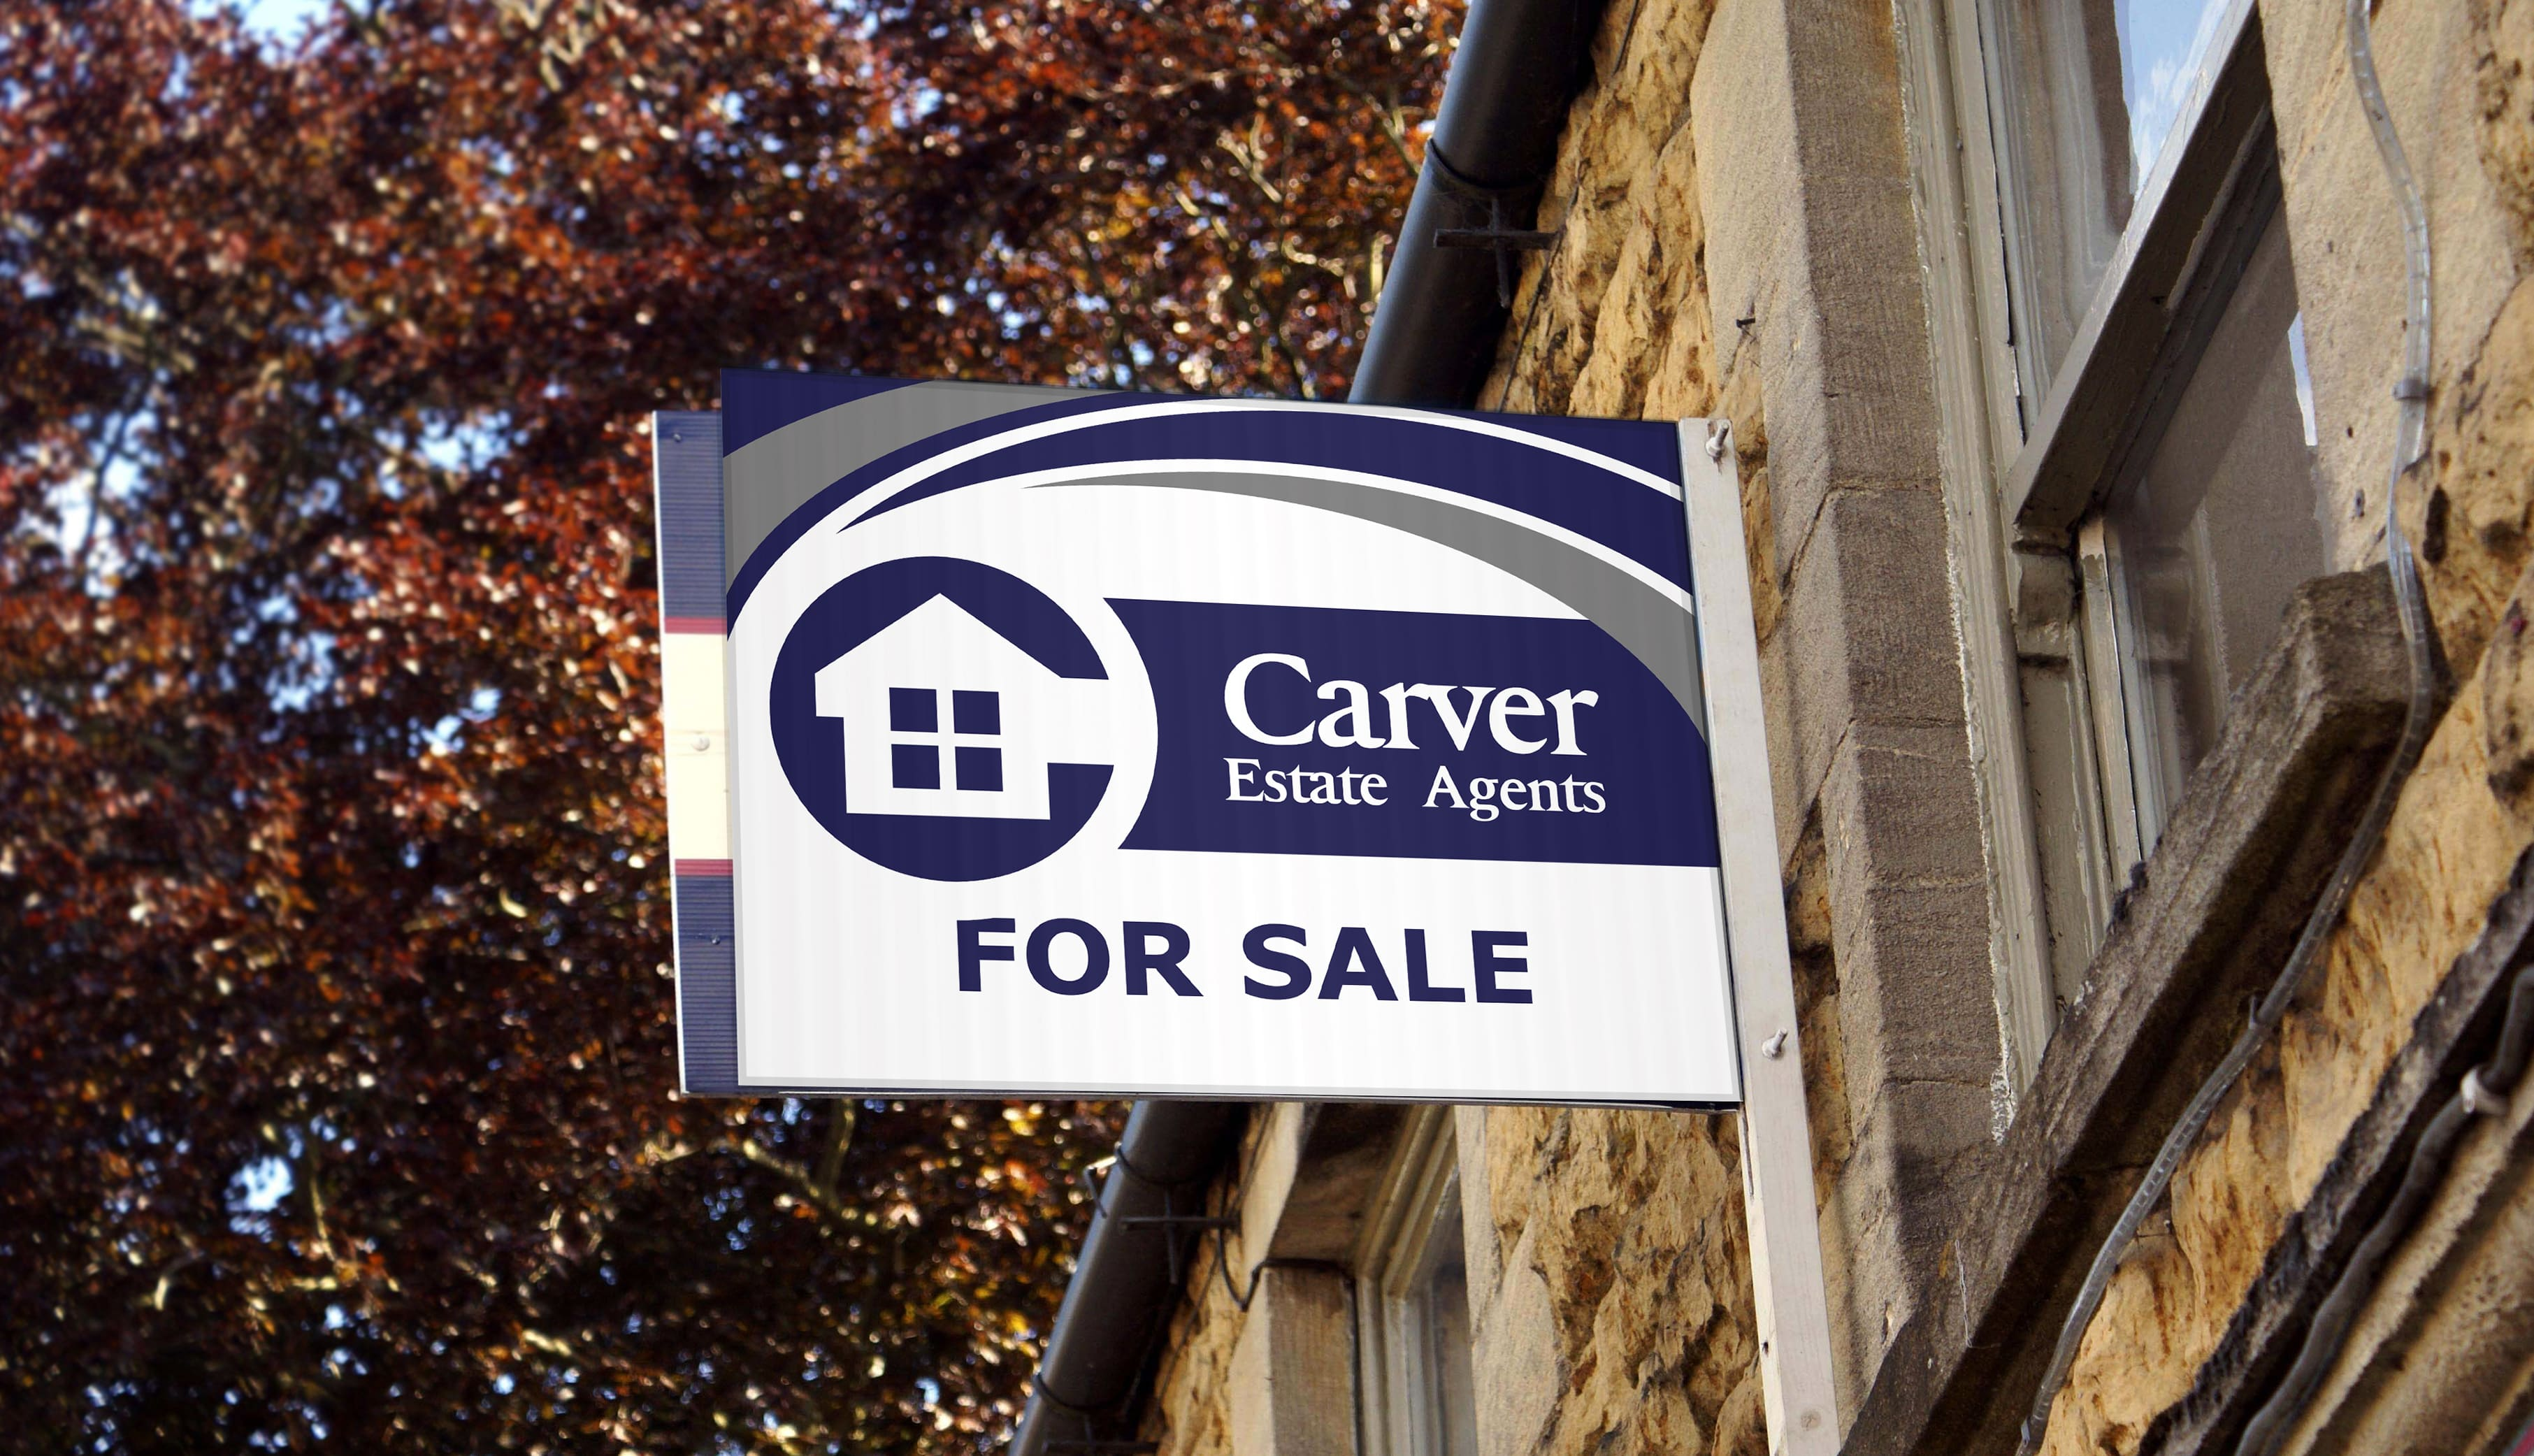 Carber Estate Agents